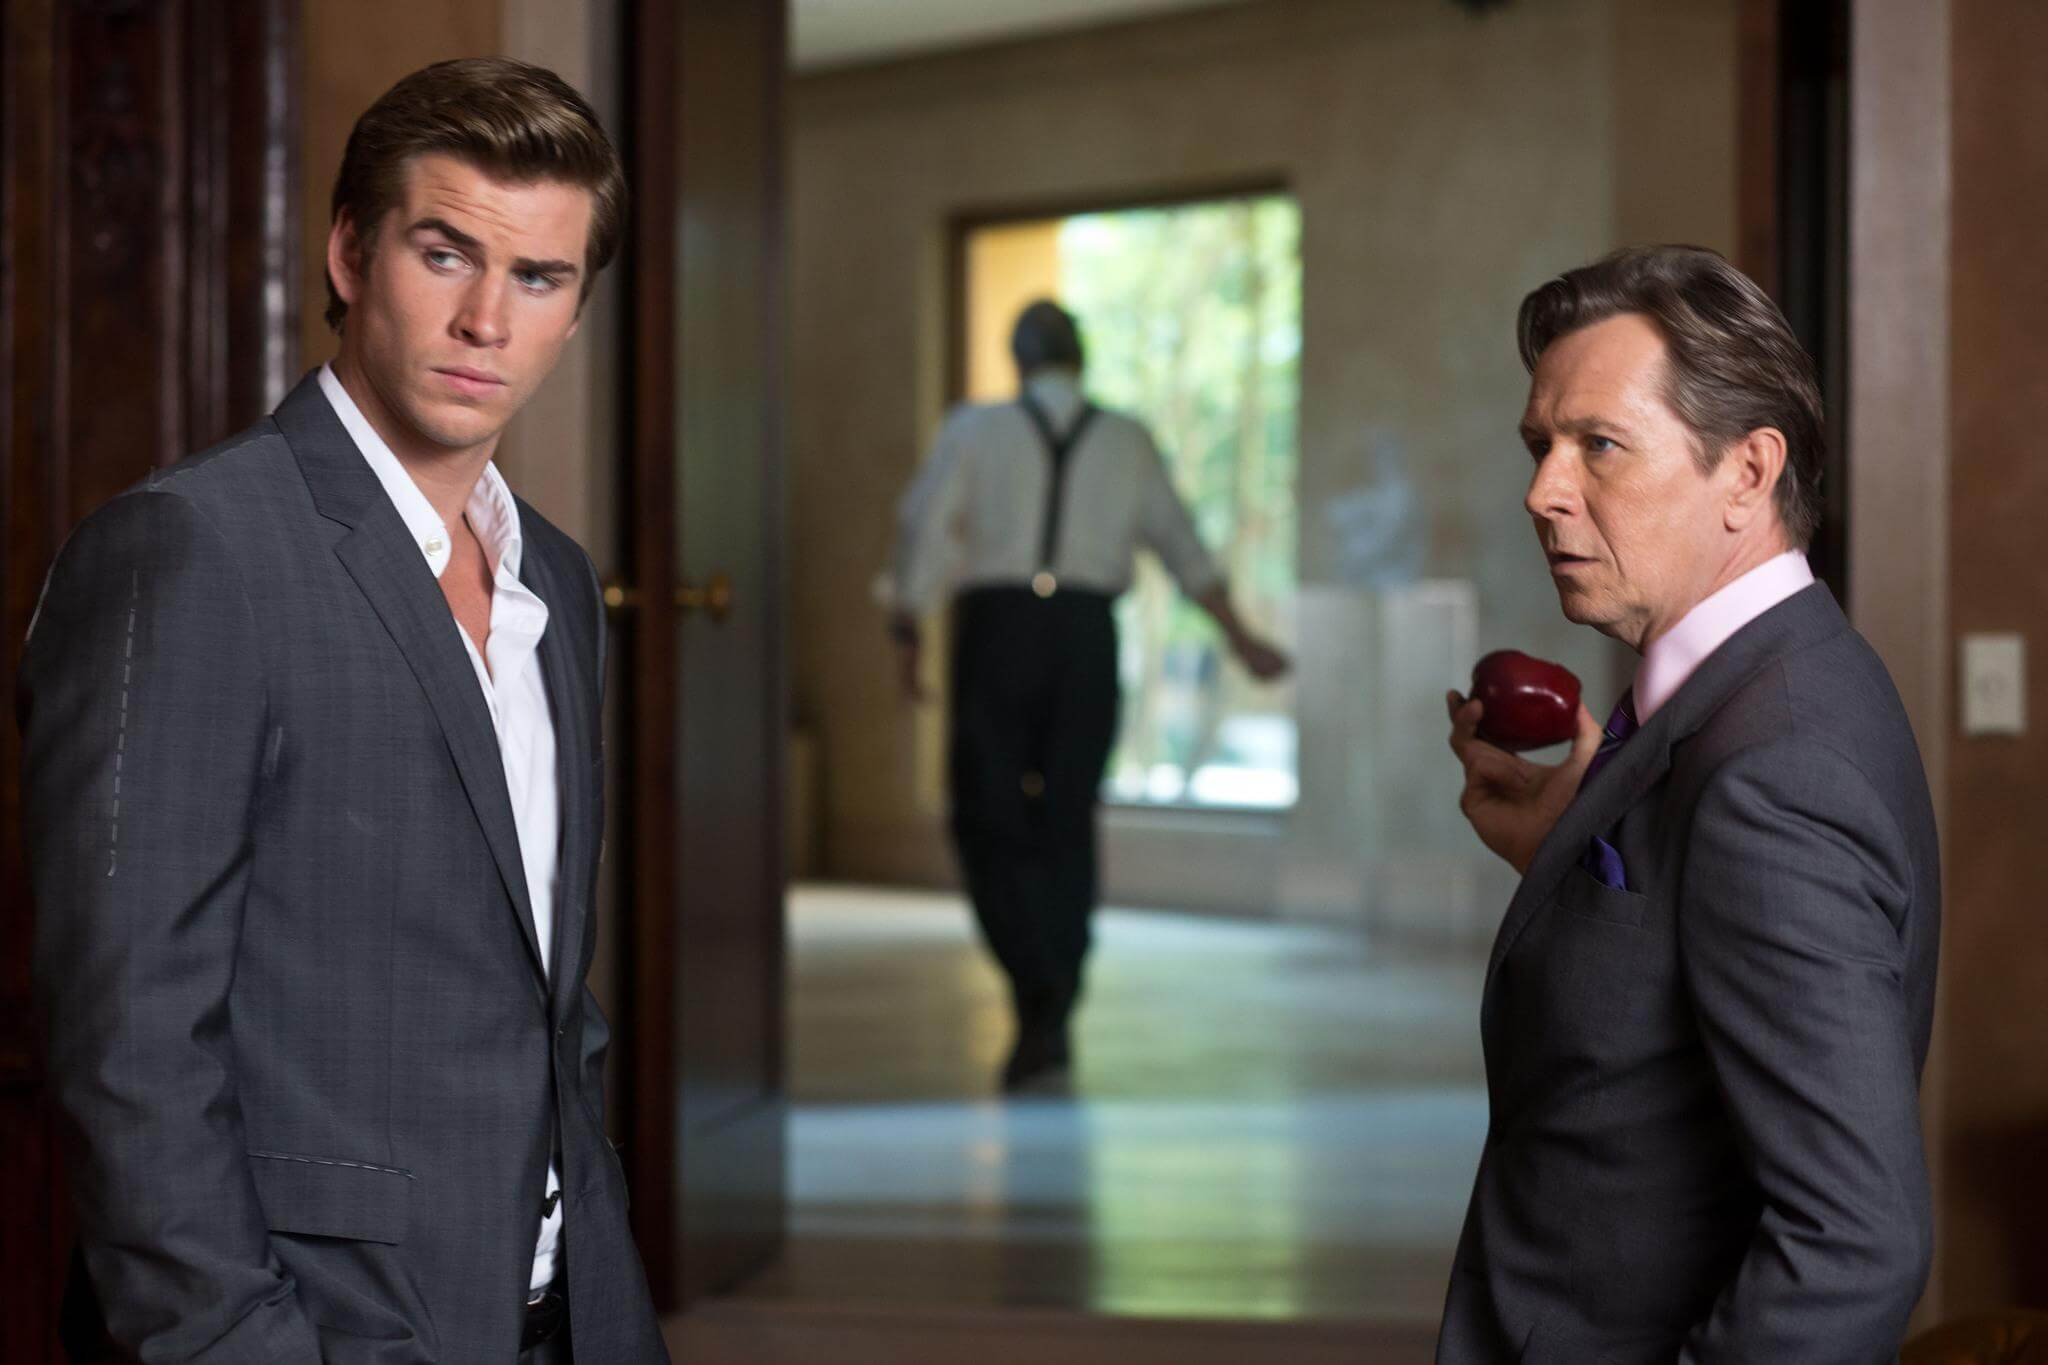 picture-of-gary-oldman-and-liam-hemsworth-in-paranoia-2013-large-picture